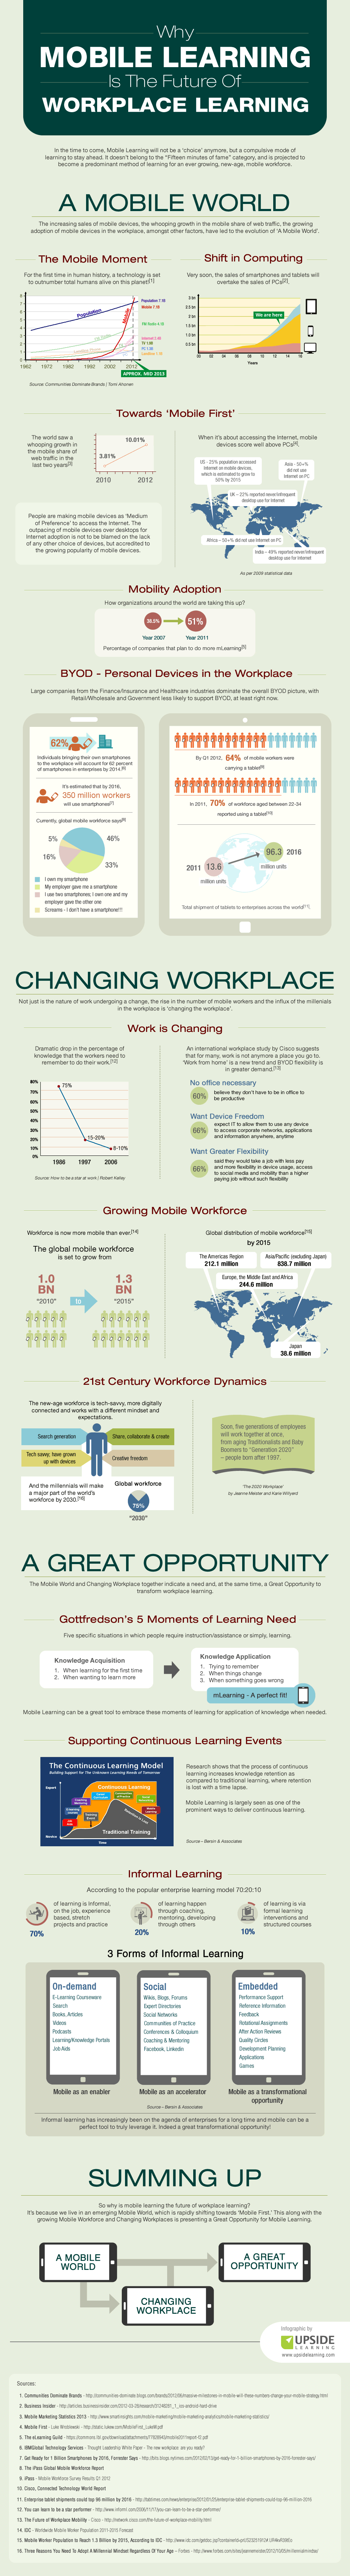 The-Future-Of-Workplace-Learning-is-Mobile-Infographic